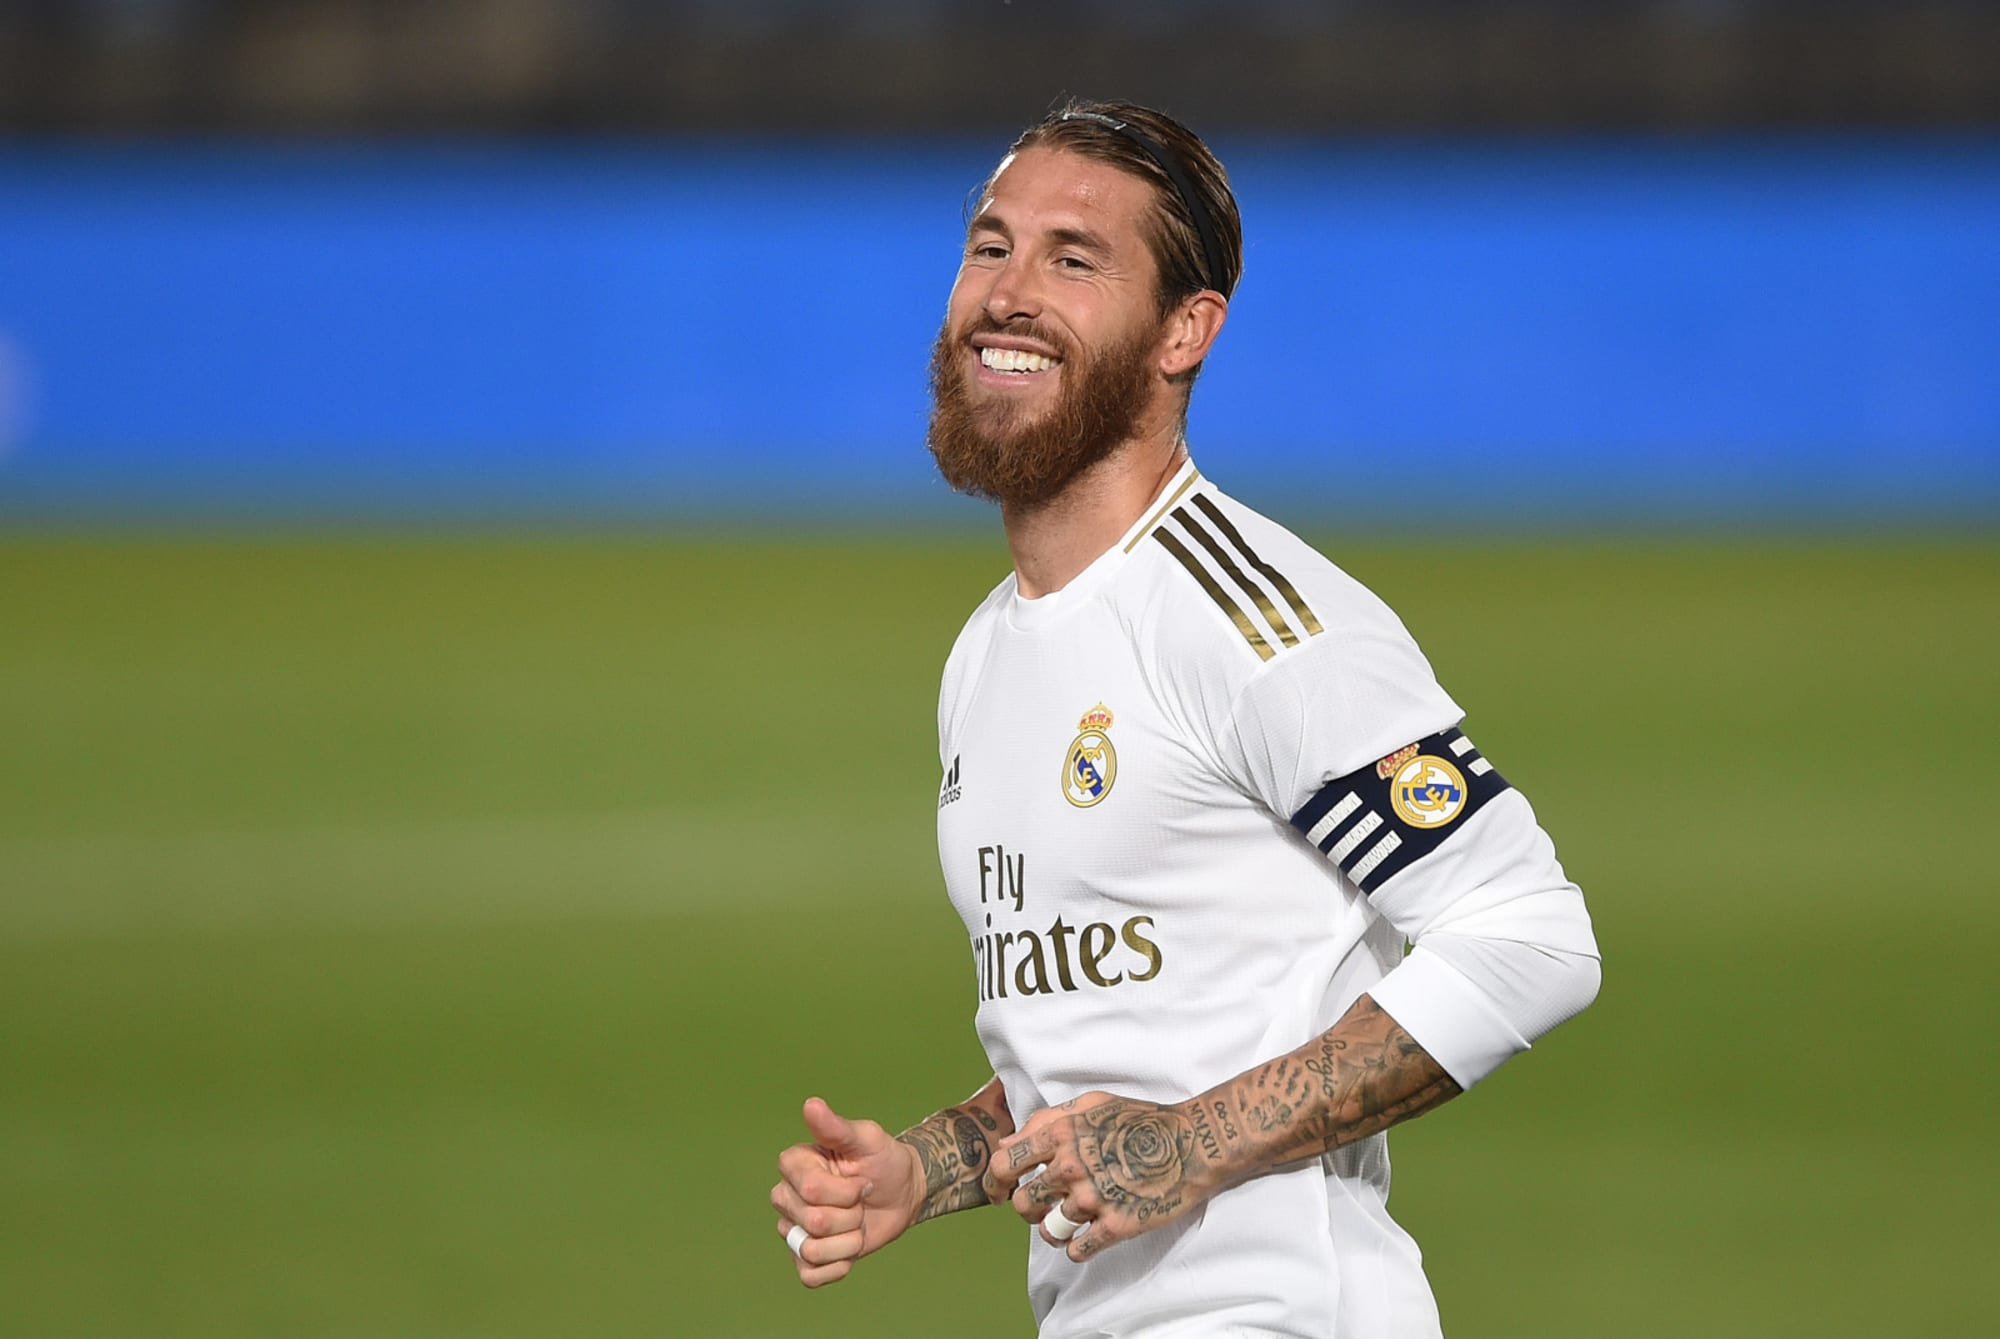 Sergio Ramos will break this Real Madrid record in 100 matches |Sergio Ramos 2020 Drawing